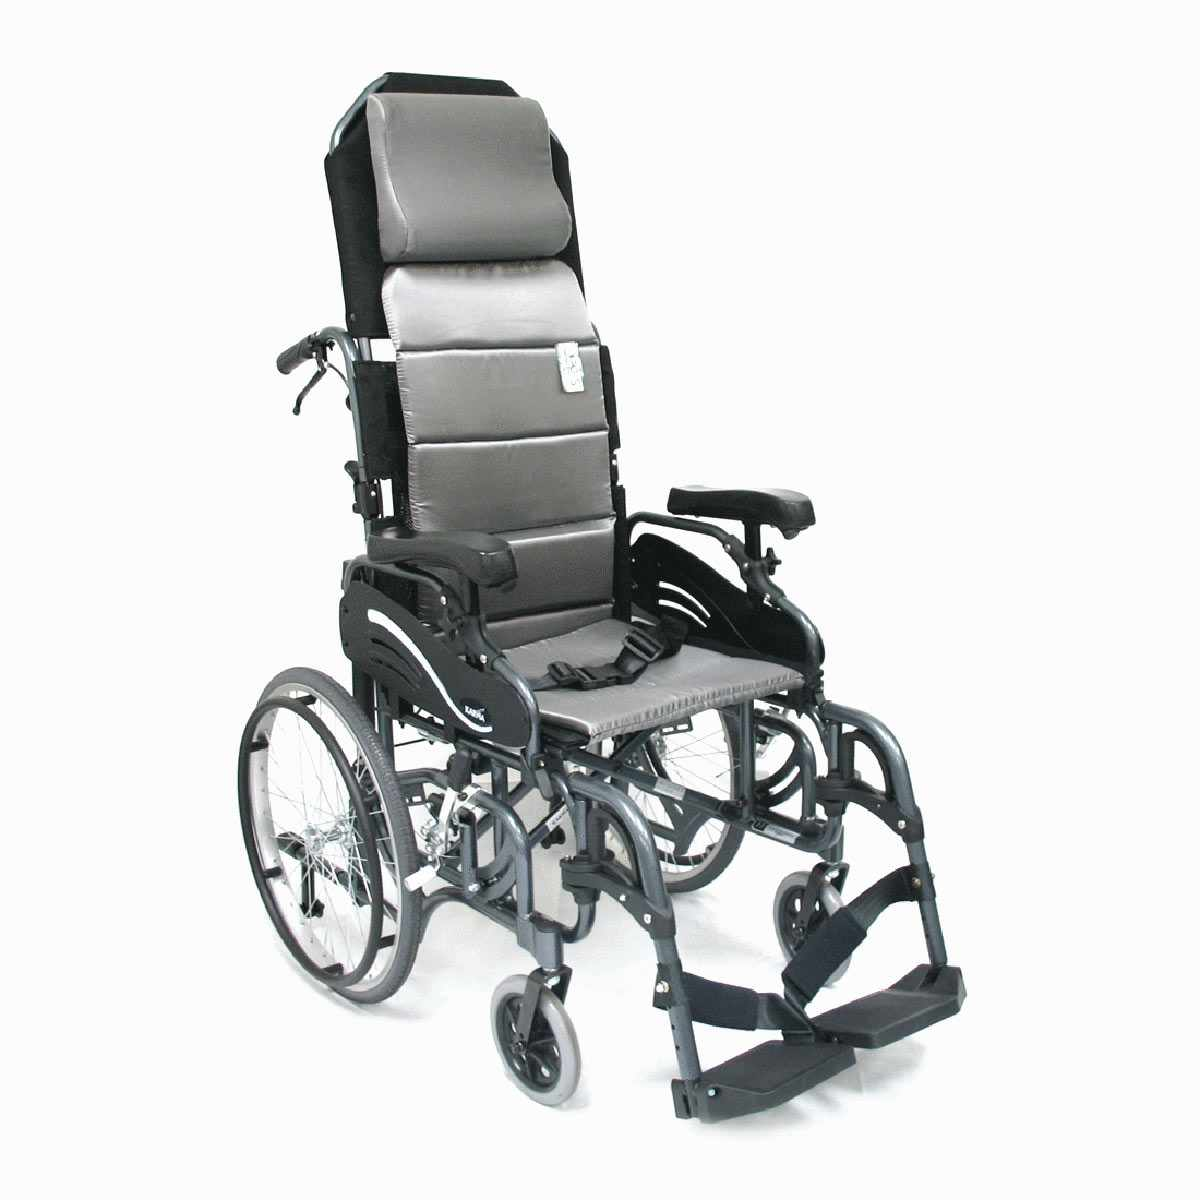 Karman healthcare foldable tilt-in-space wheelchair